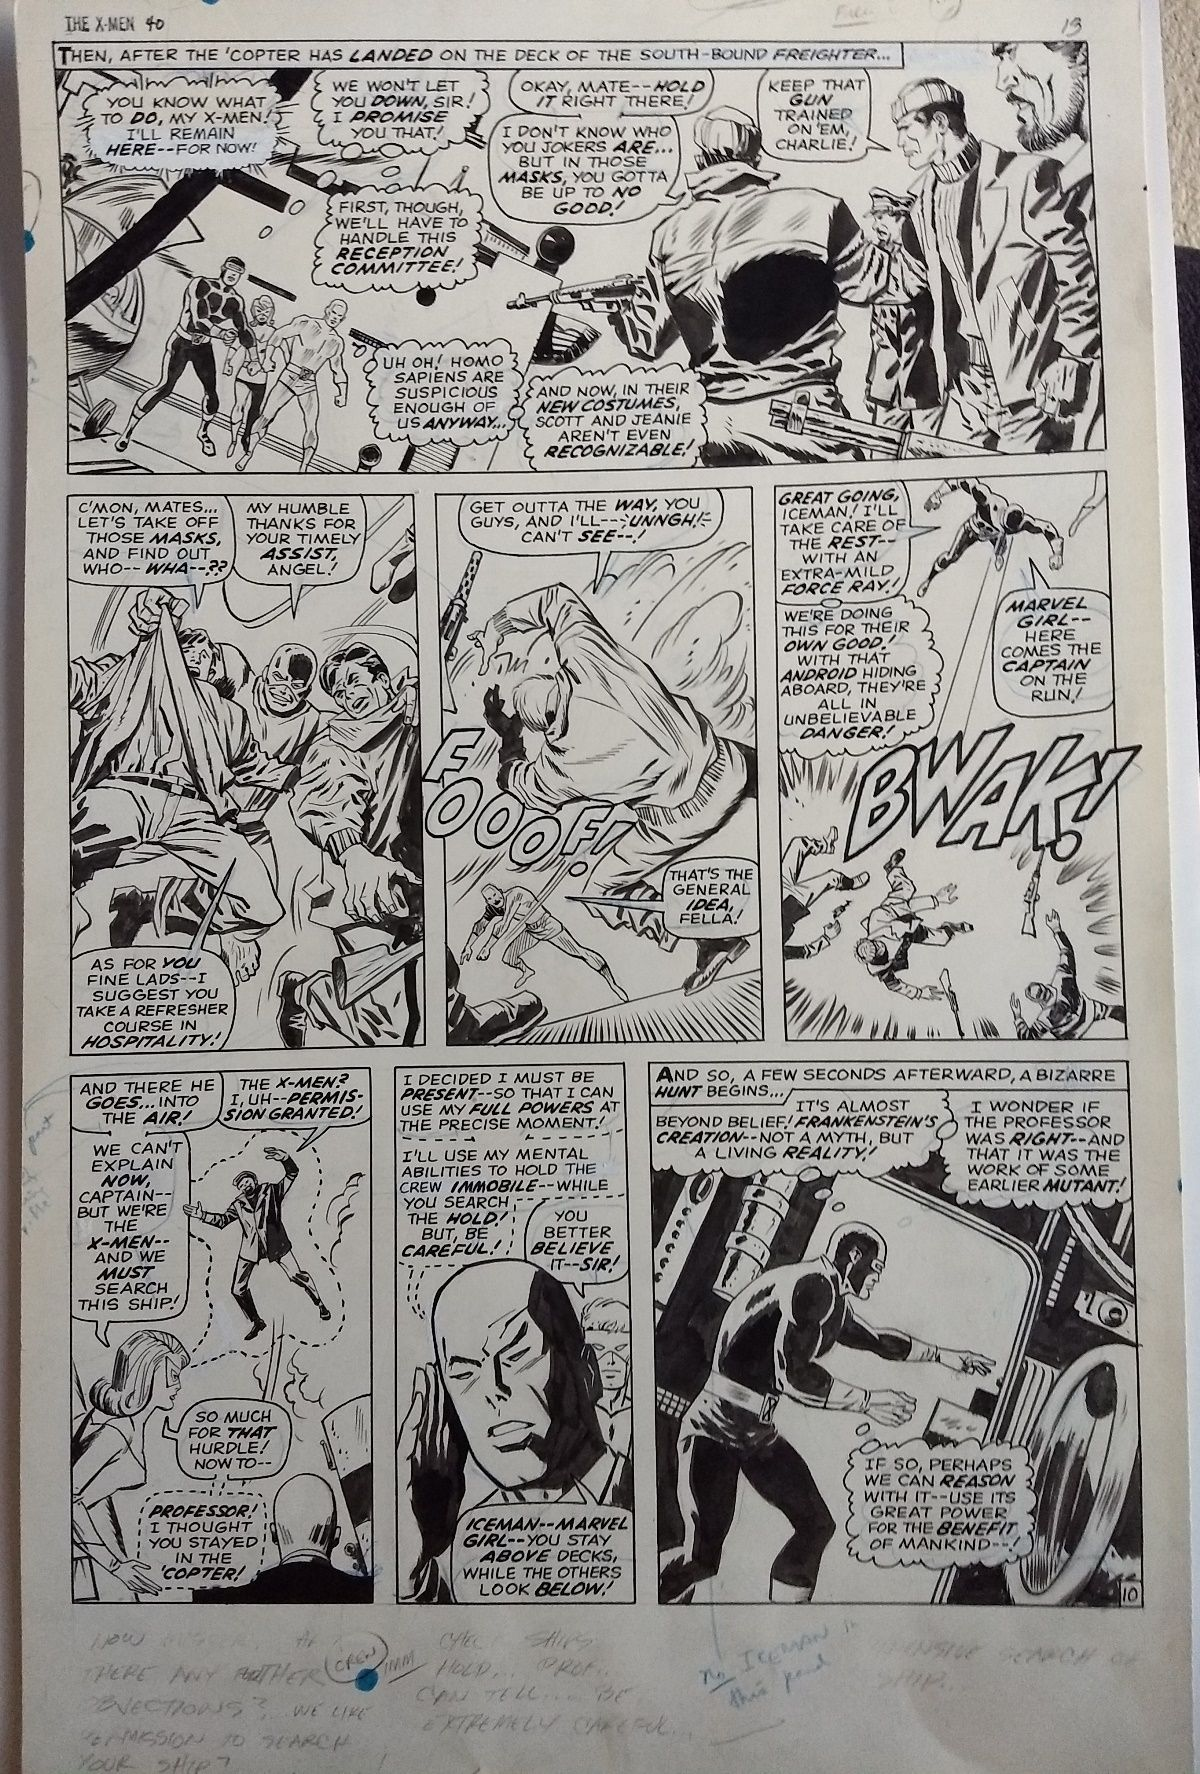 Beyond Bizzarre Now Theyre Hiding >> Closed Closed Silver Age Twice Up Marvel Art X Men Tta Giant